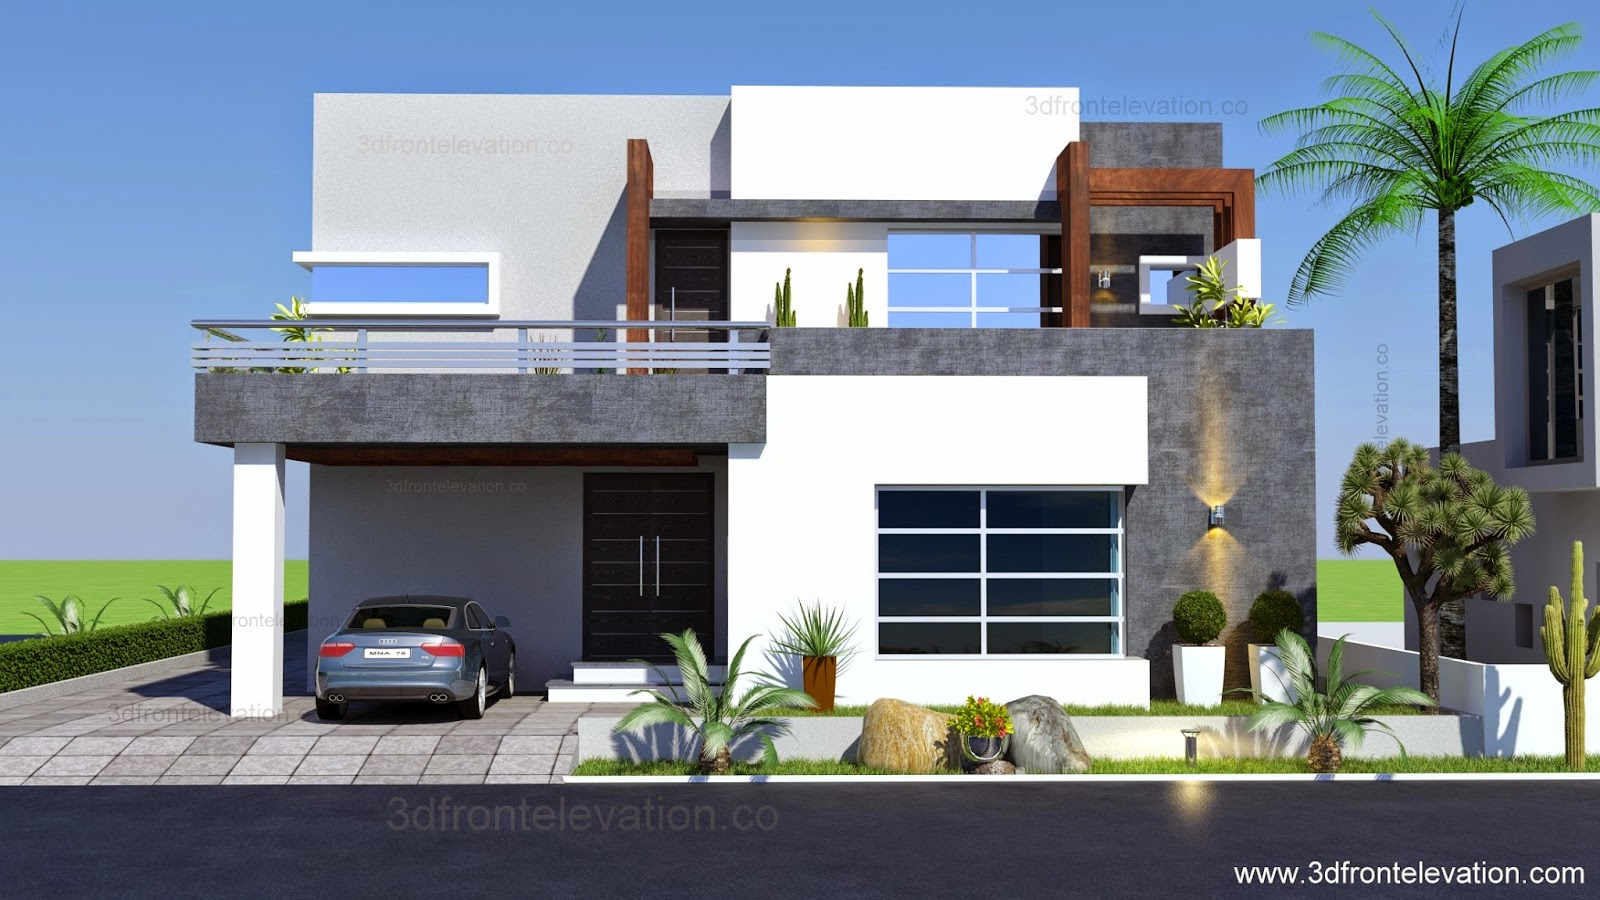 D Front Elevation Of House : D front elevation kanal contemporary house plan